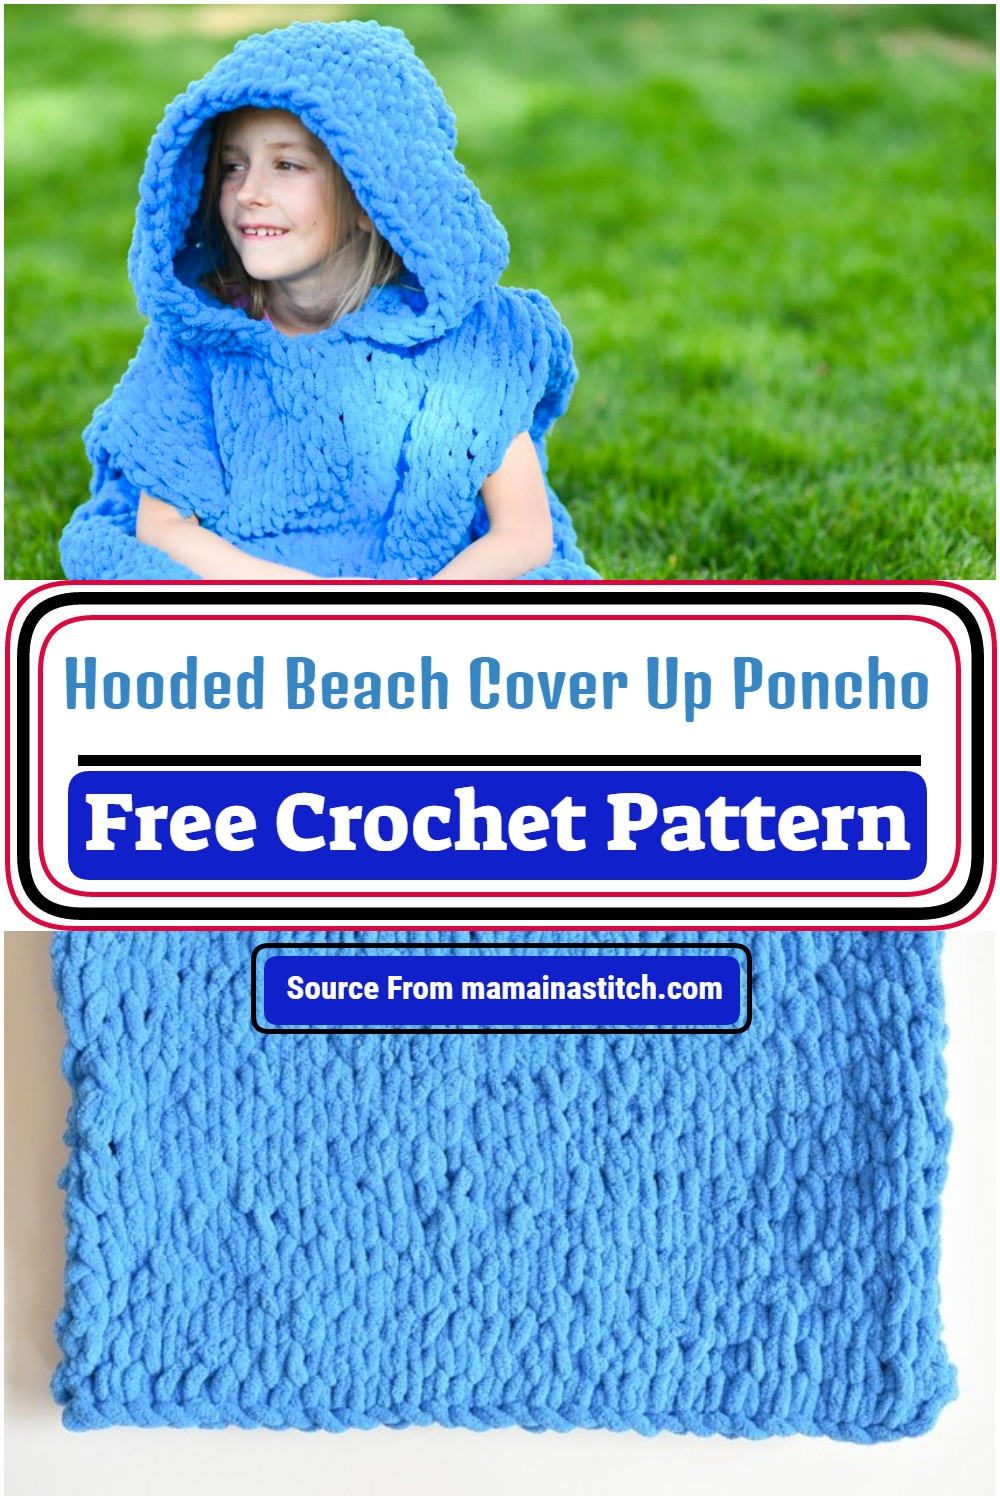 Crochet Hooded Beach Cover Up Poncho Pattern